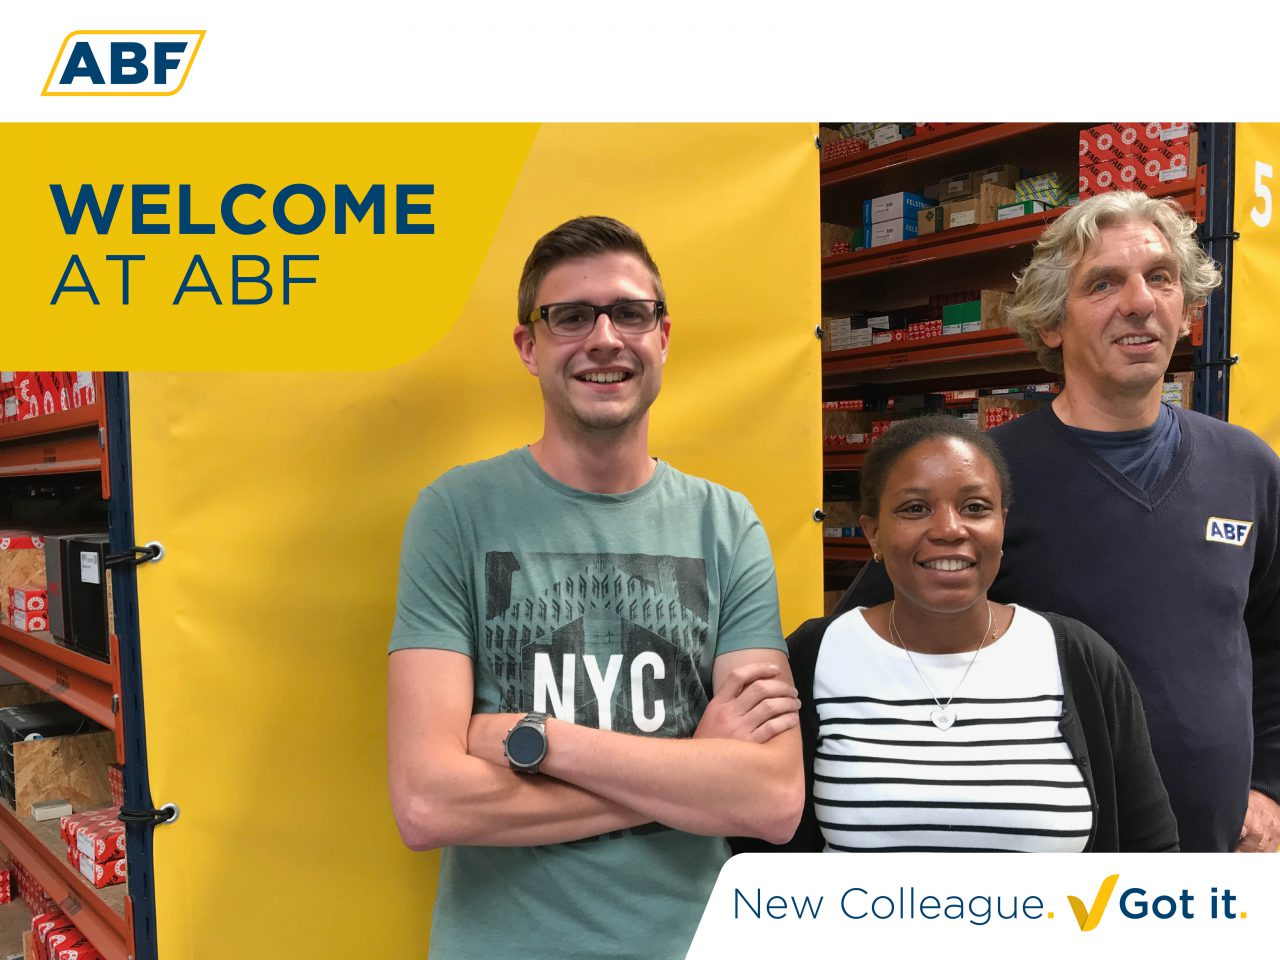 Alicia, Dylan and Henk: welcome at ABF!